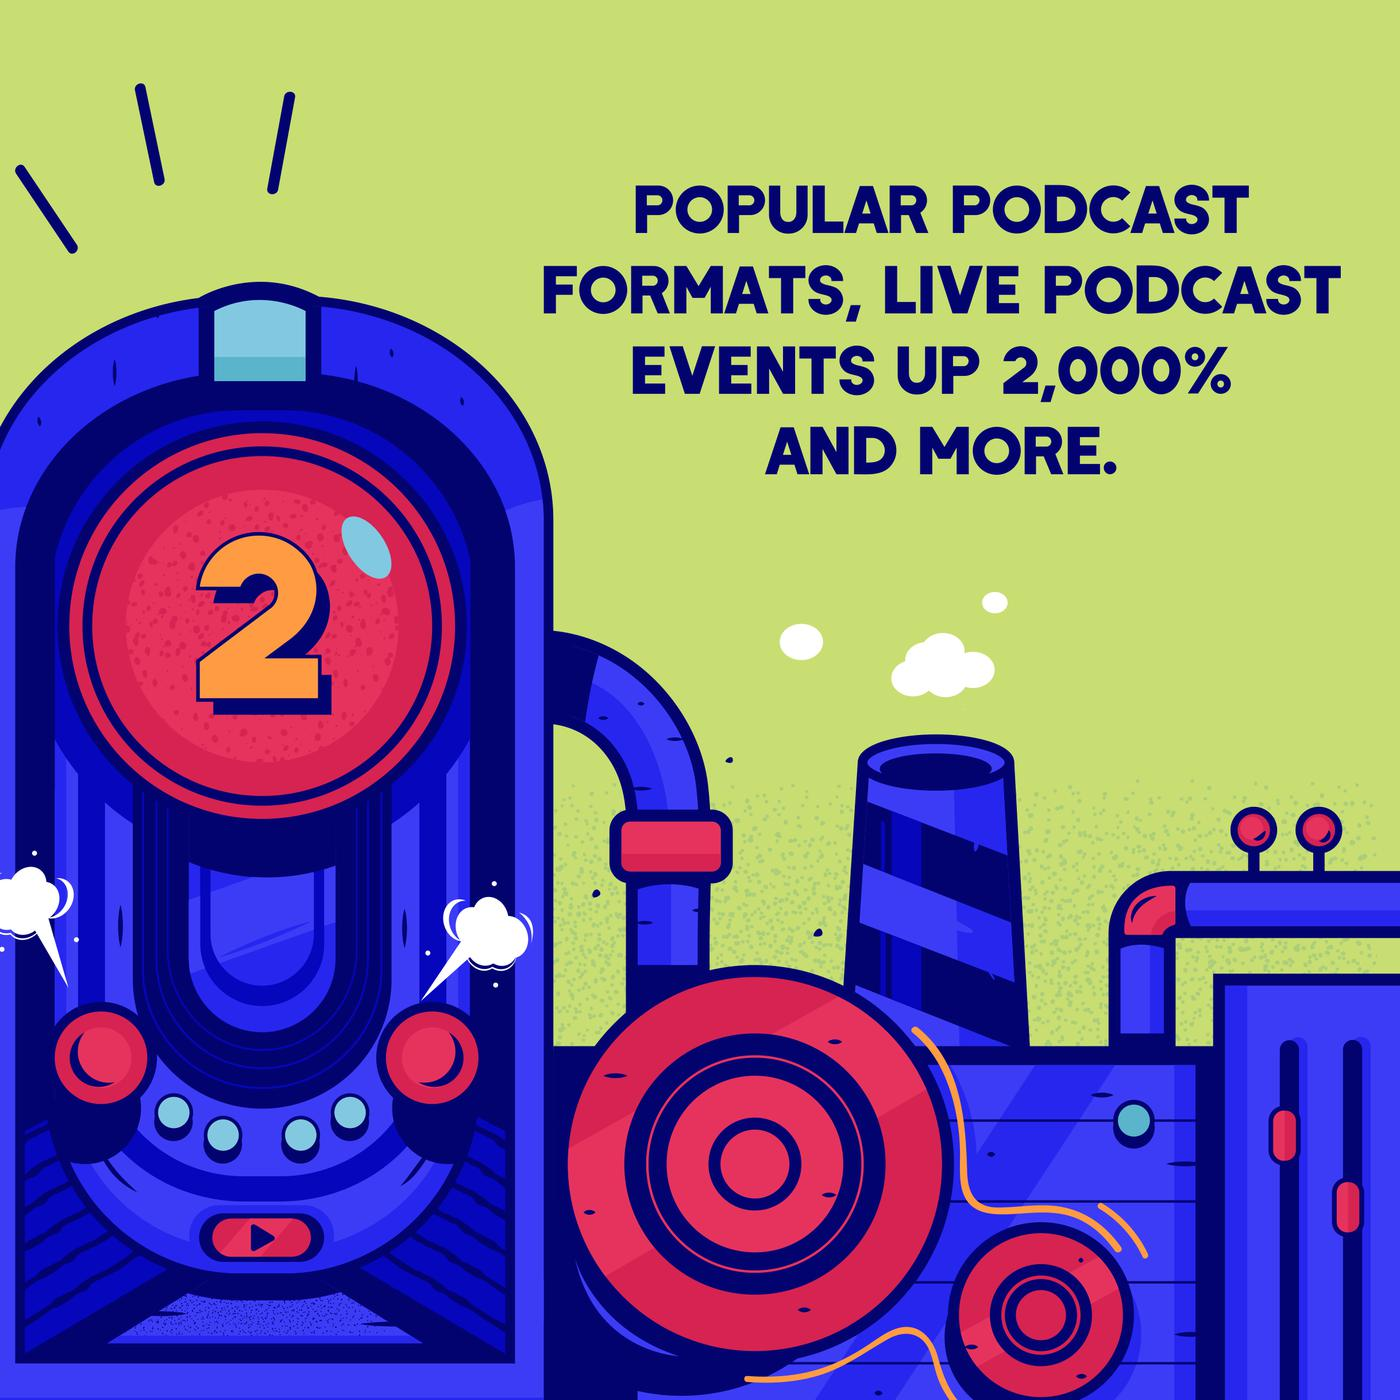 Popular Podcast Formats, Live Podcast Events up 2,000%, and More.